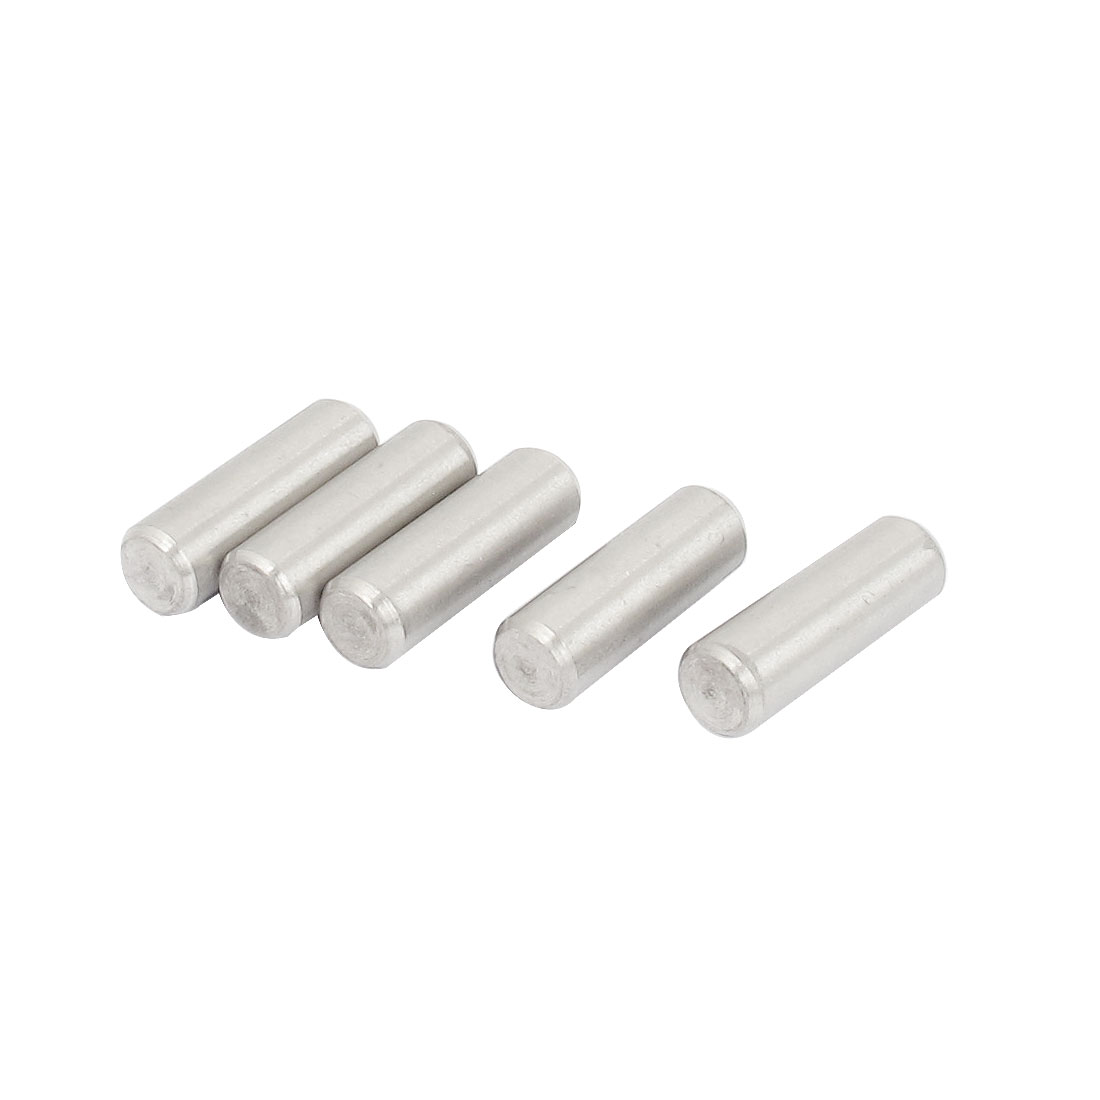 8mm x 25mm 304 Stainless Steel Dowel Pins Fasten Elements Silver Tone 5pcs